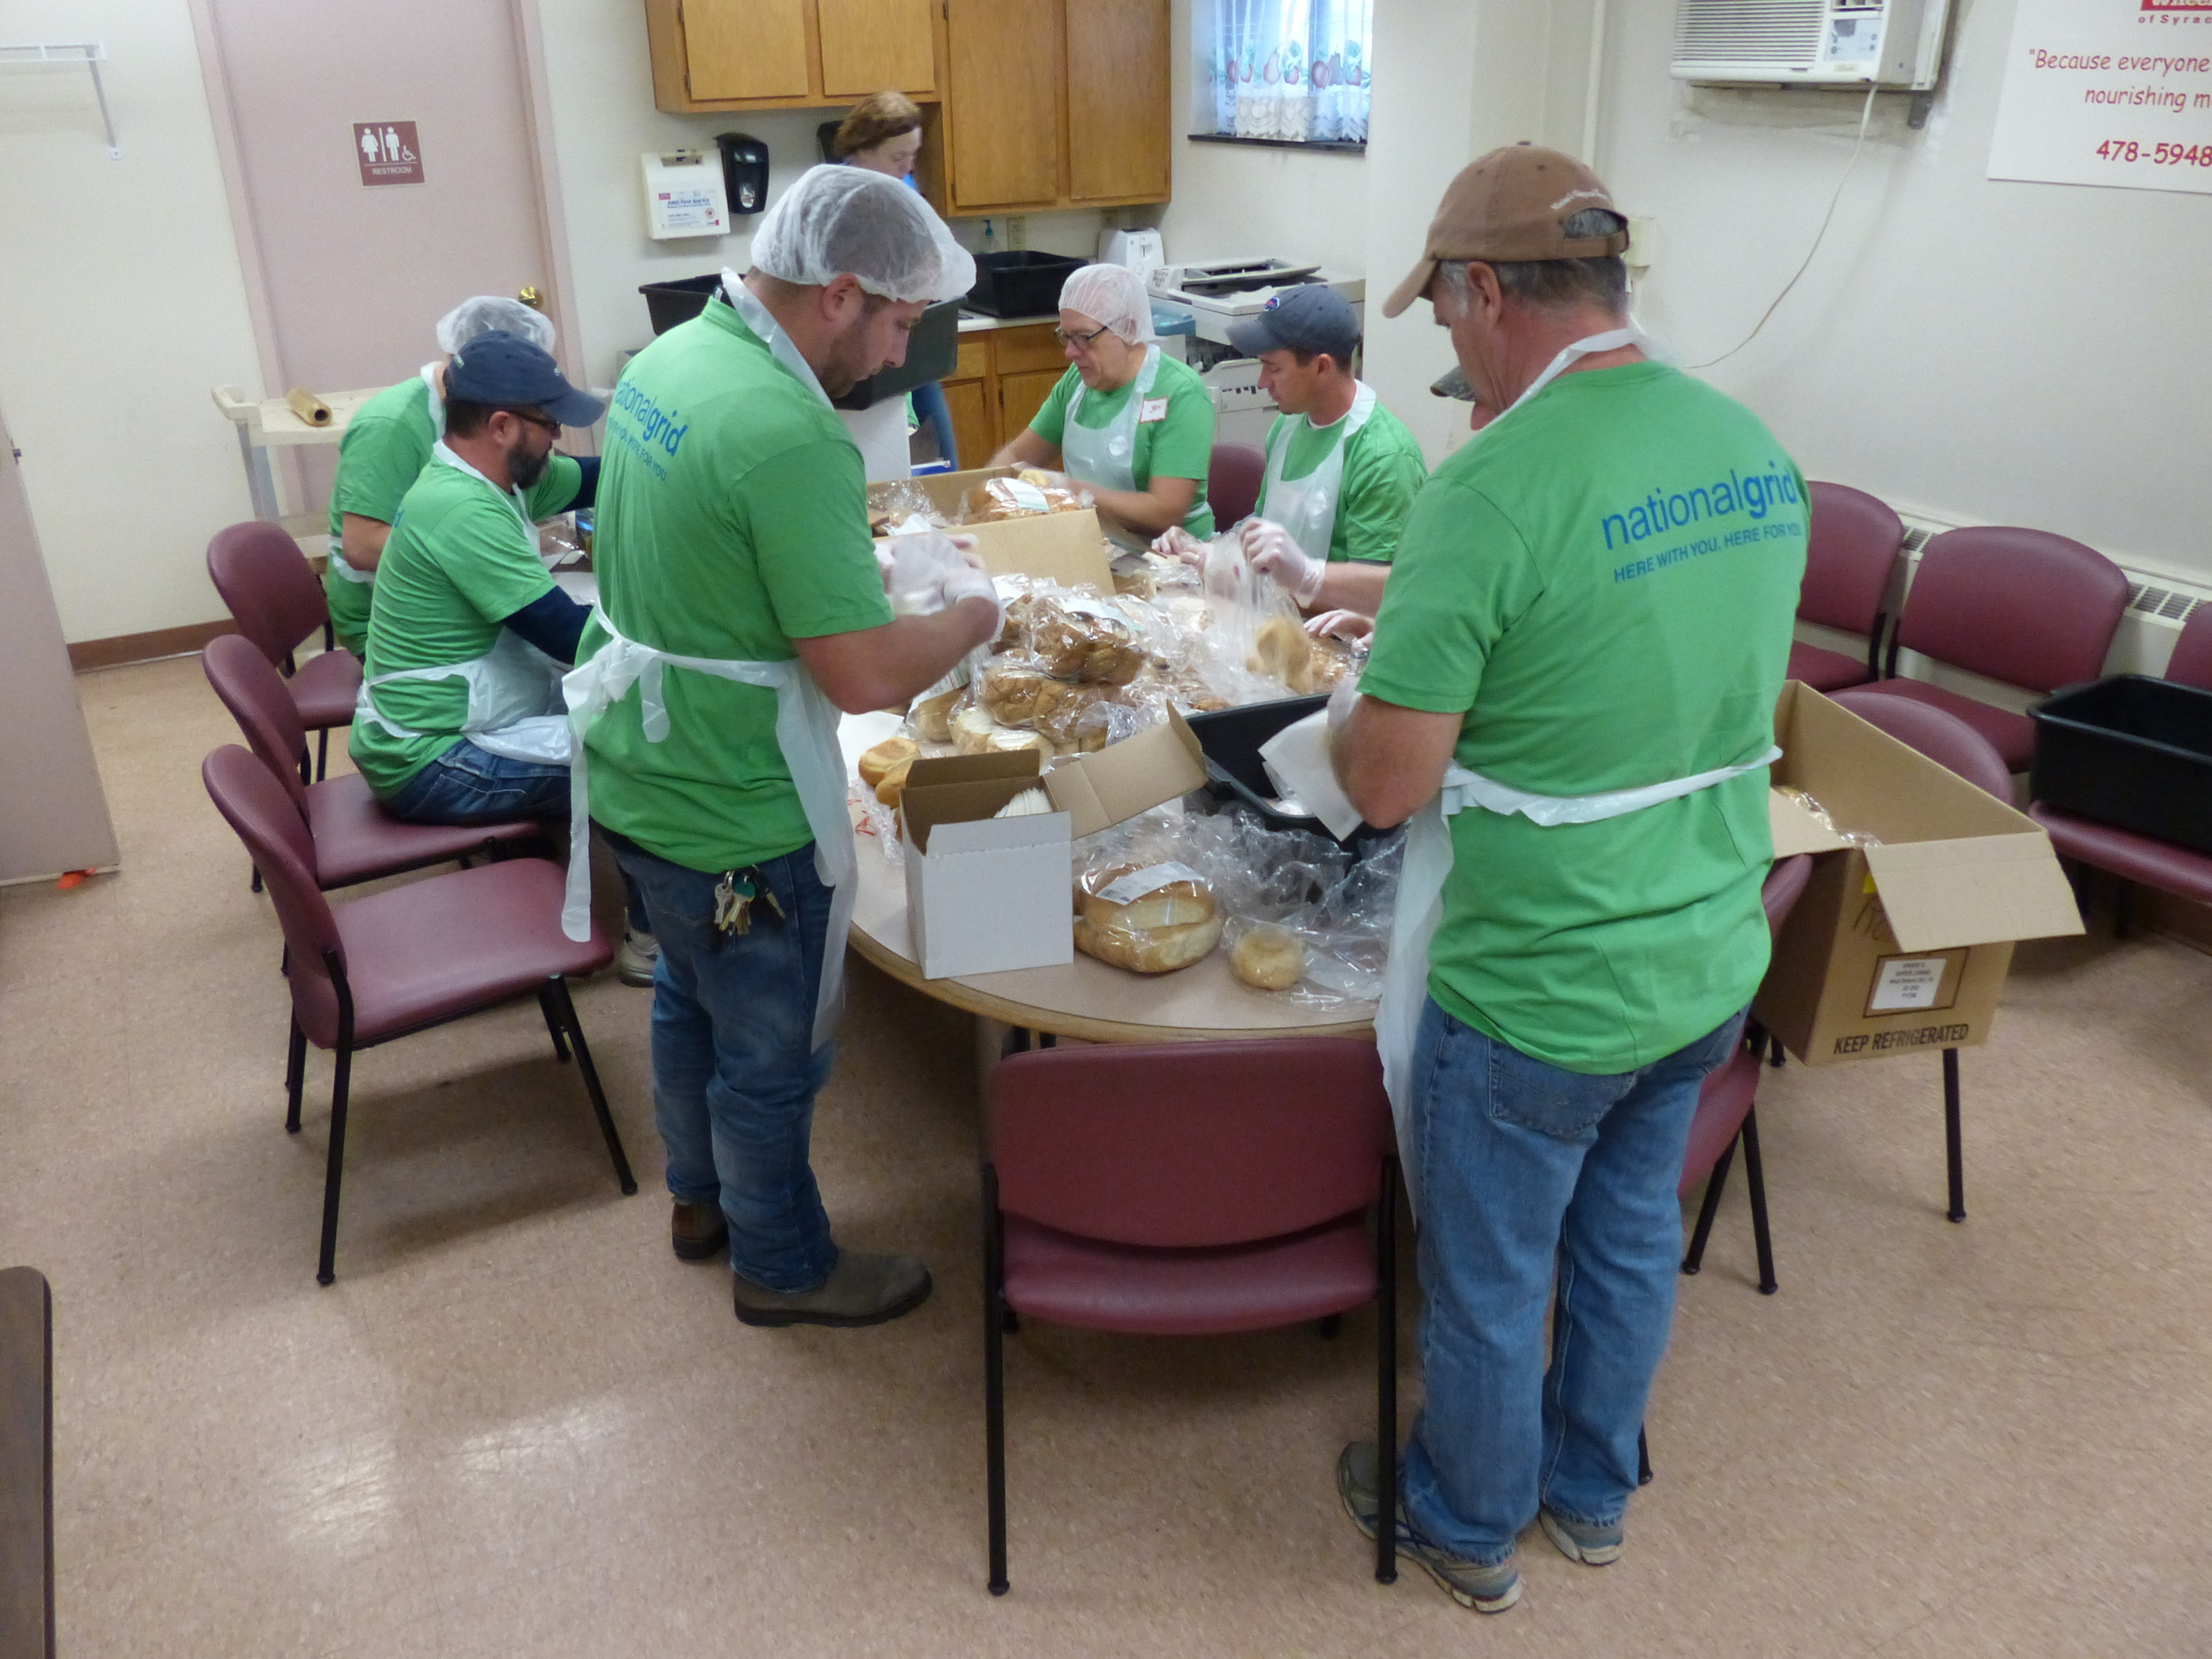 national grid employees volunteering at meals on wheels of syracuse